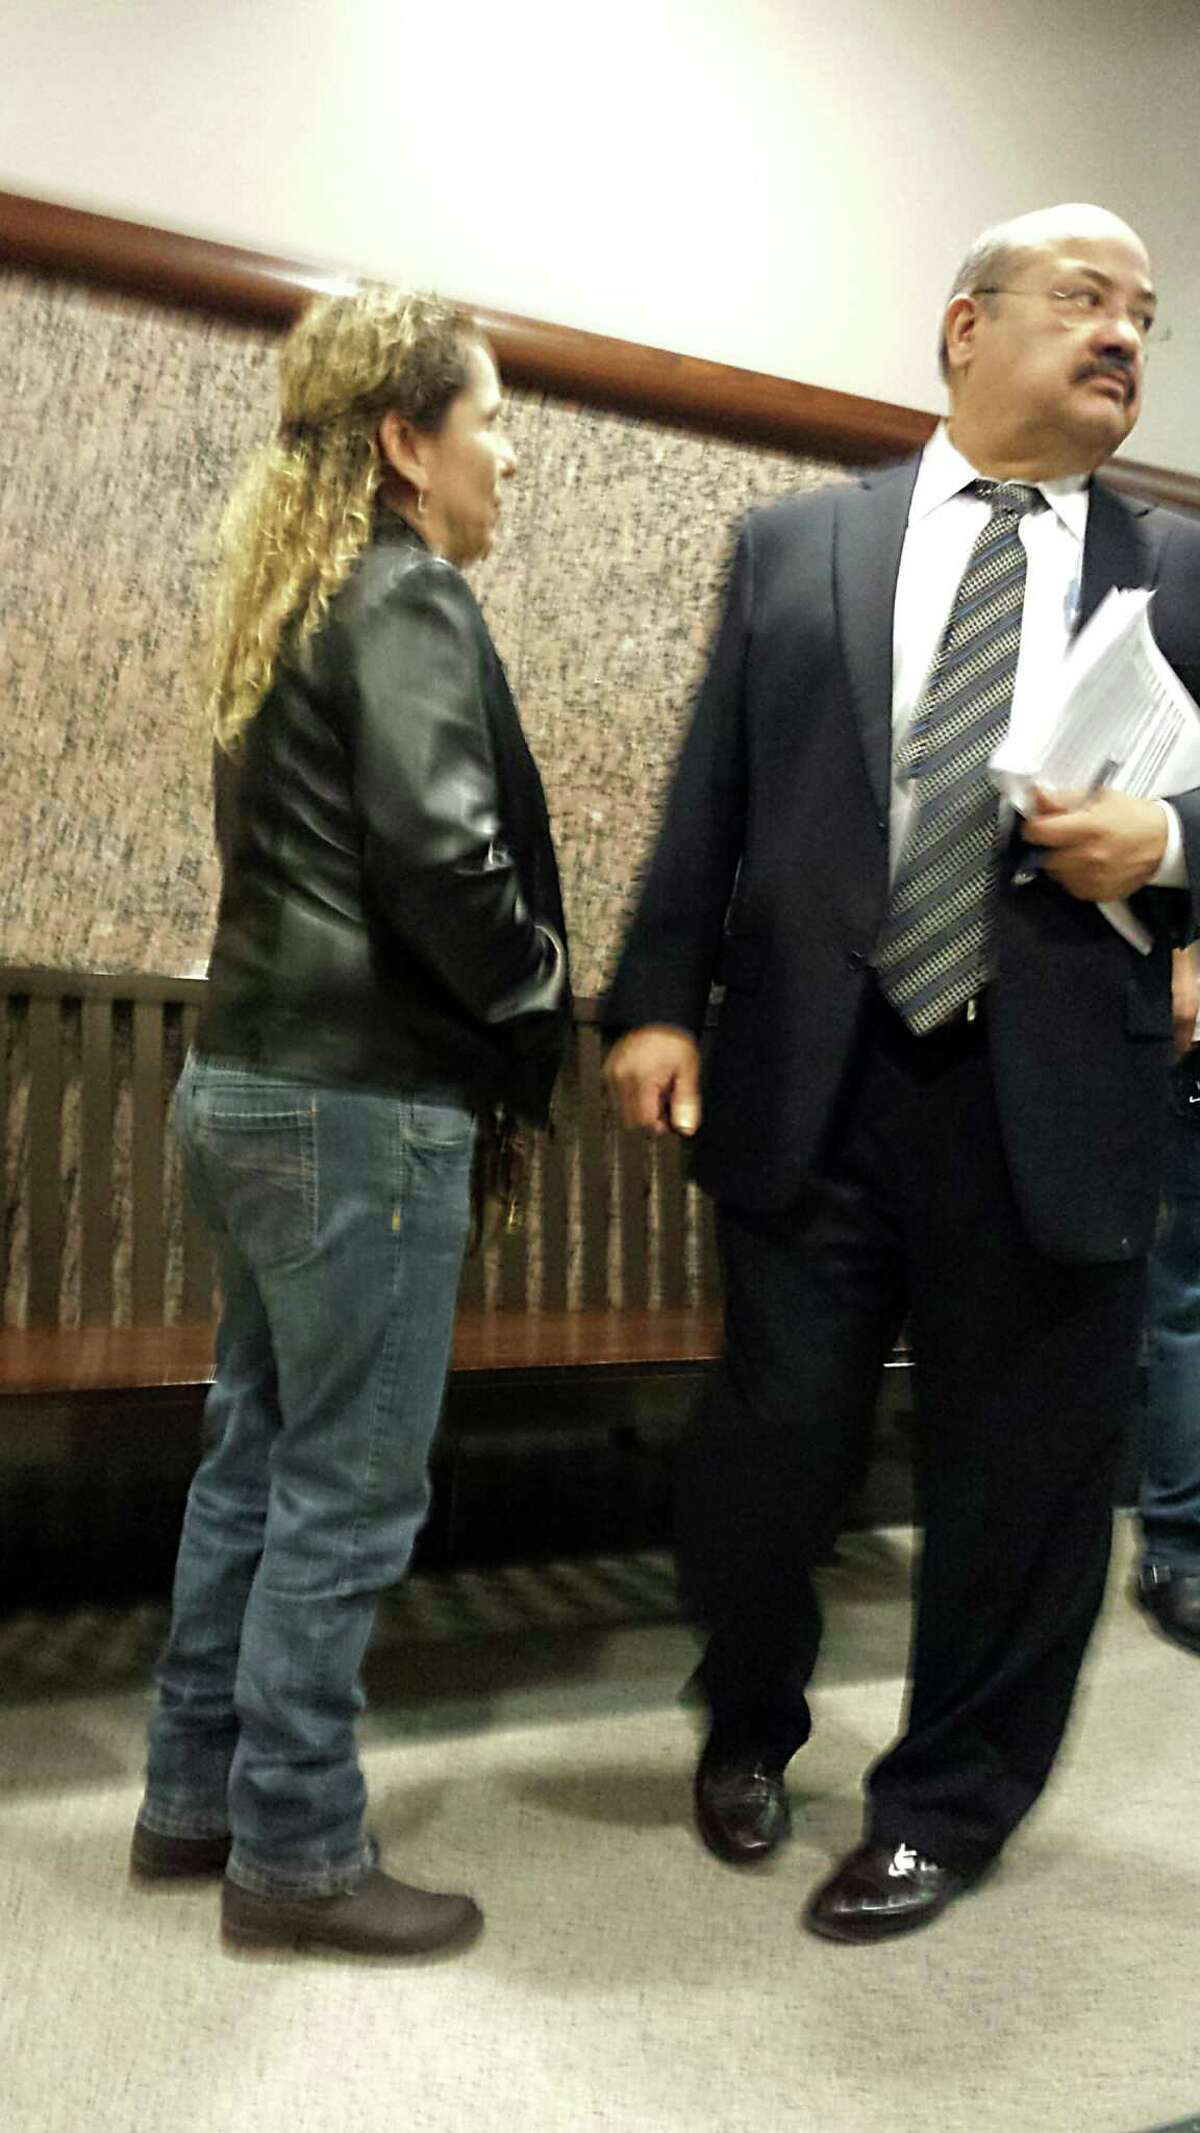 Al Acevedo Jr., right, confers with a client as he sheds his cases on Tuesday, Jan. 14, 2014. Acevedo has withdrawn from his state and federal cases as he negotiates with federal authorities investigating him and corruption at the Bexar County Courthouse.